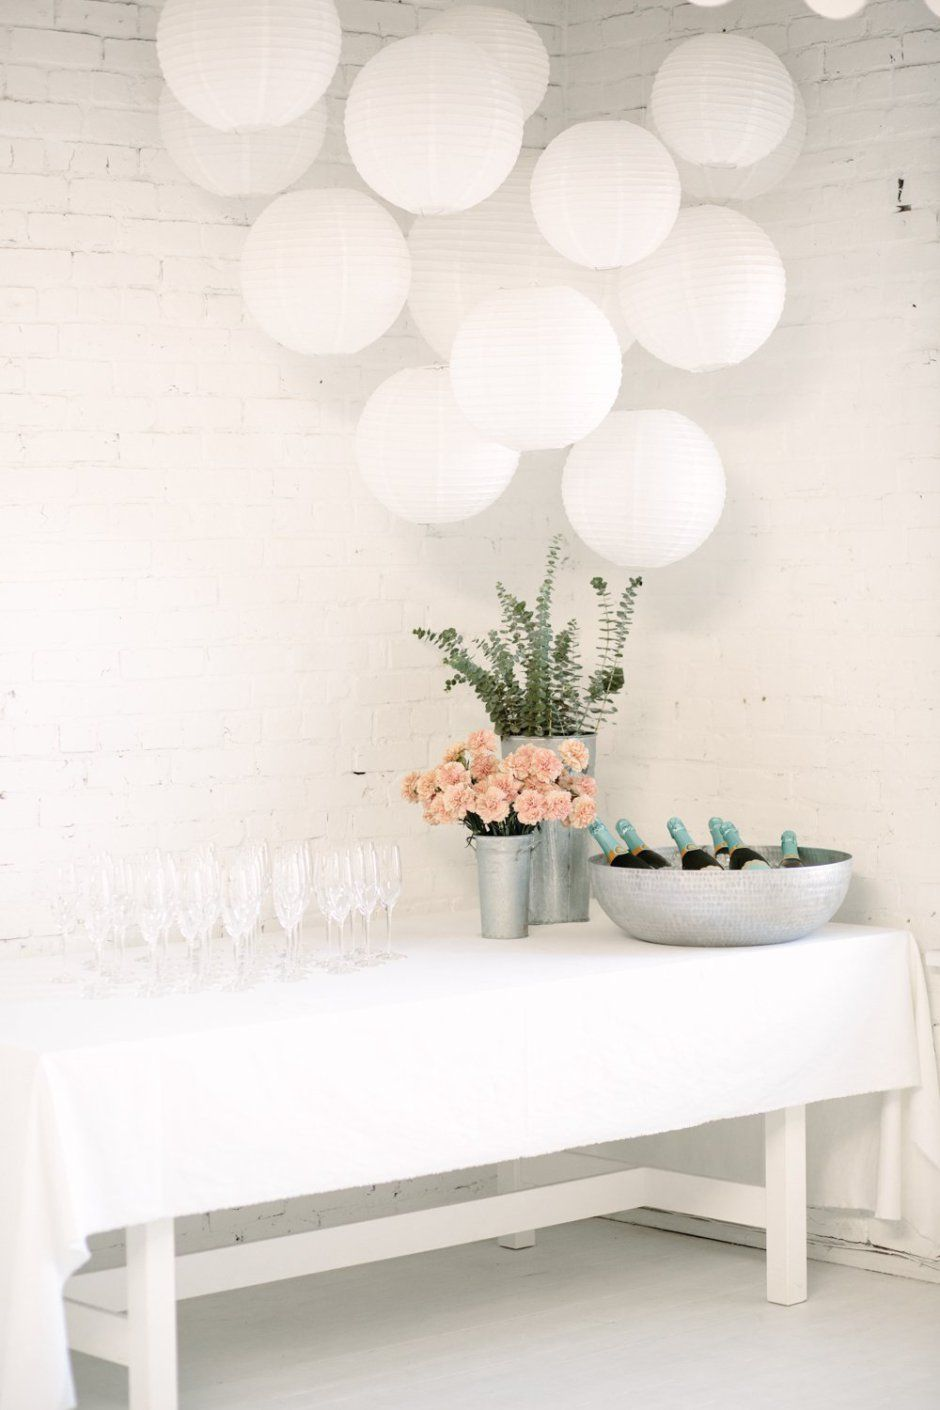 Fashion style Party Engagement simple decorations pictures for woman